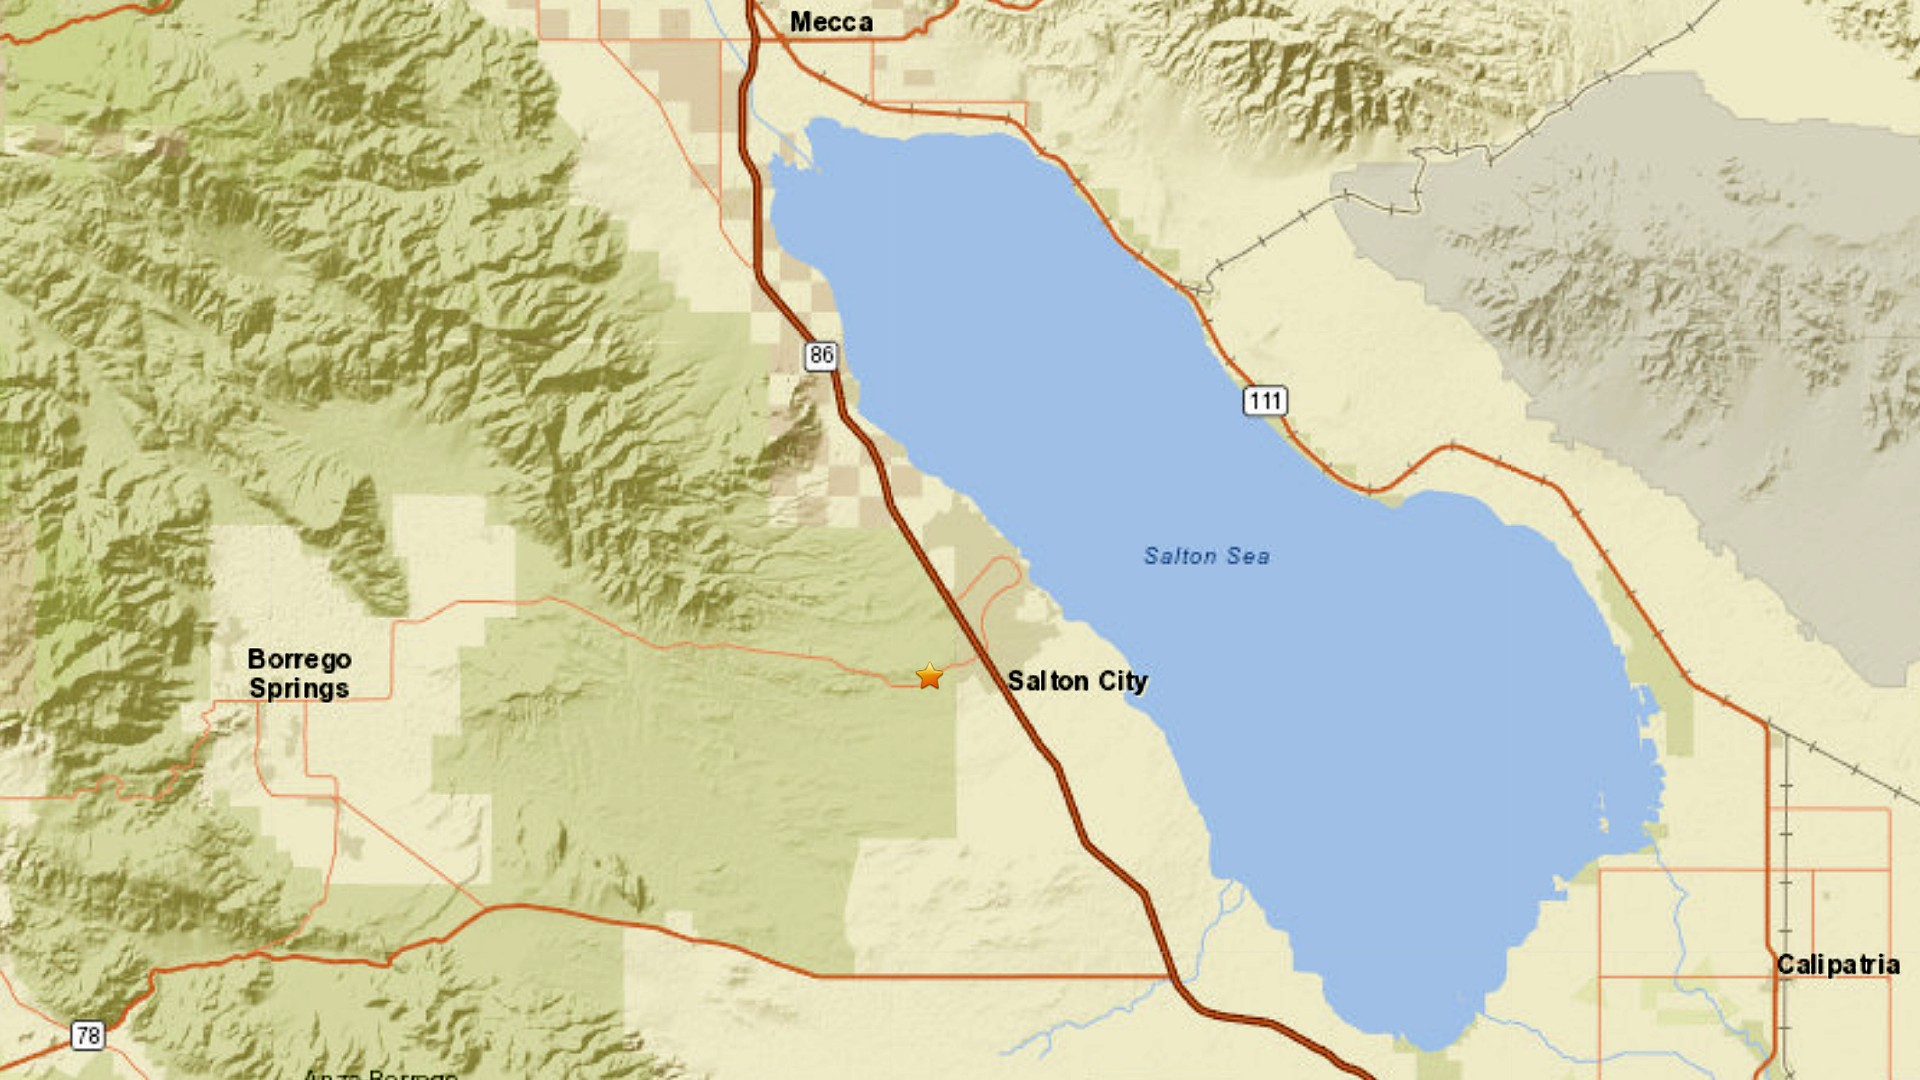 A 3.1 magnitude earthquake struck near La Quinta on Aug. 14, 2020. (U.S. Geological Survey)